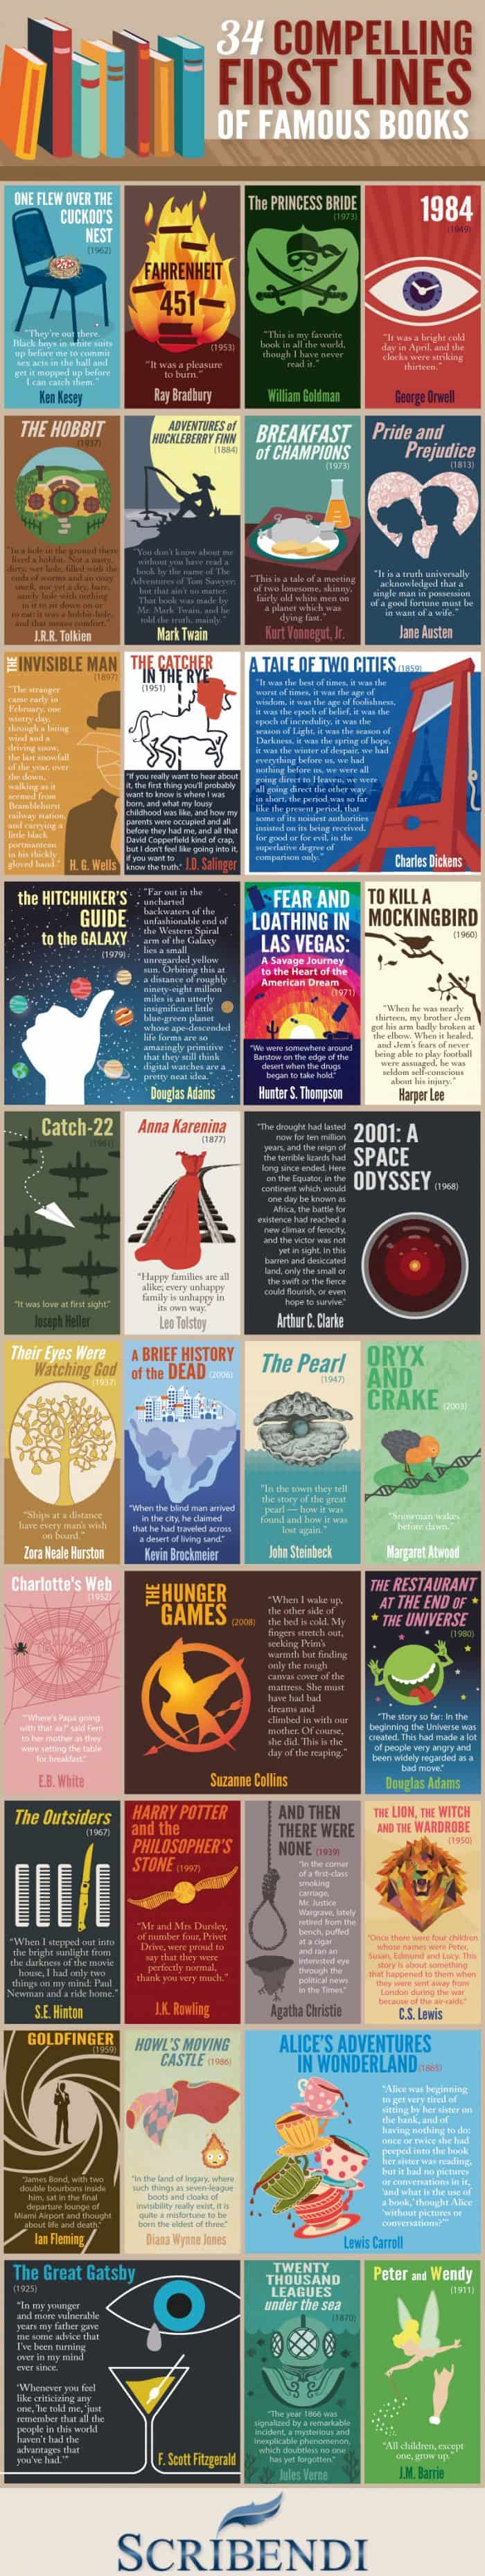 The first lines of some of the world's famous books